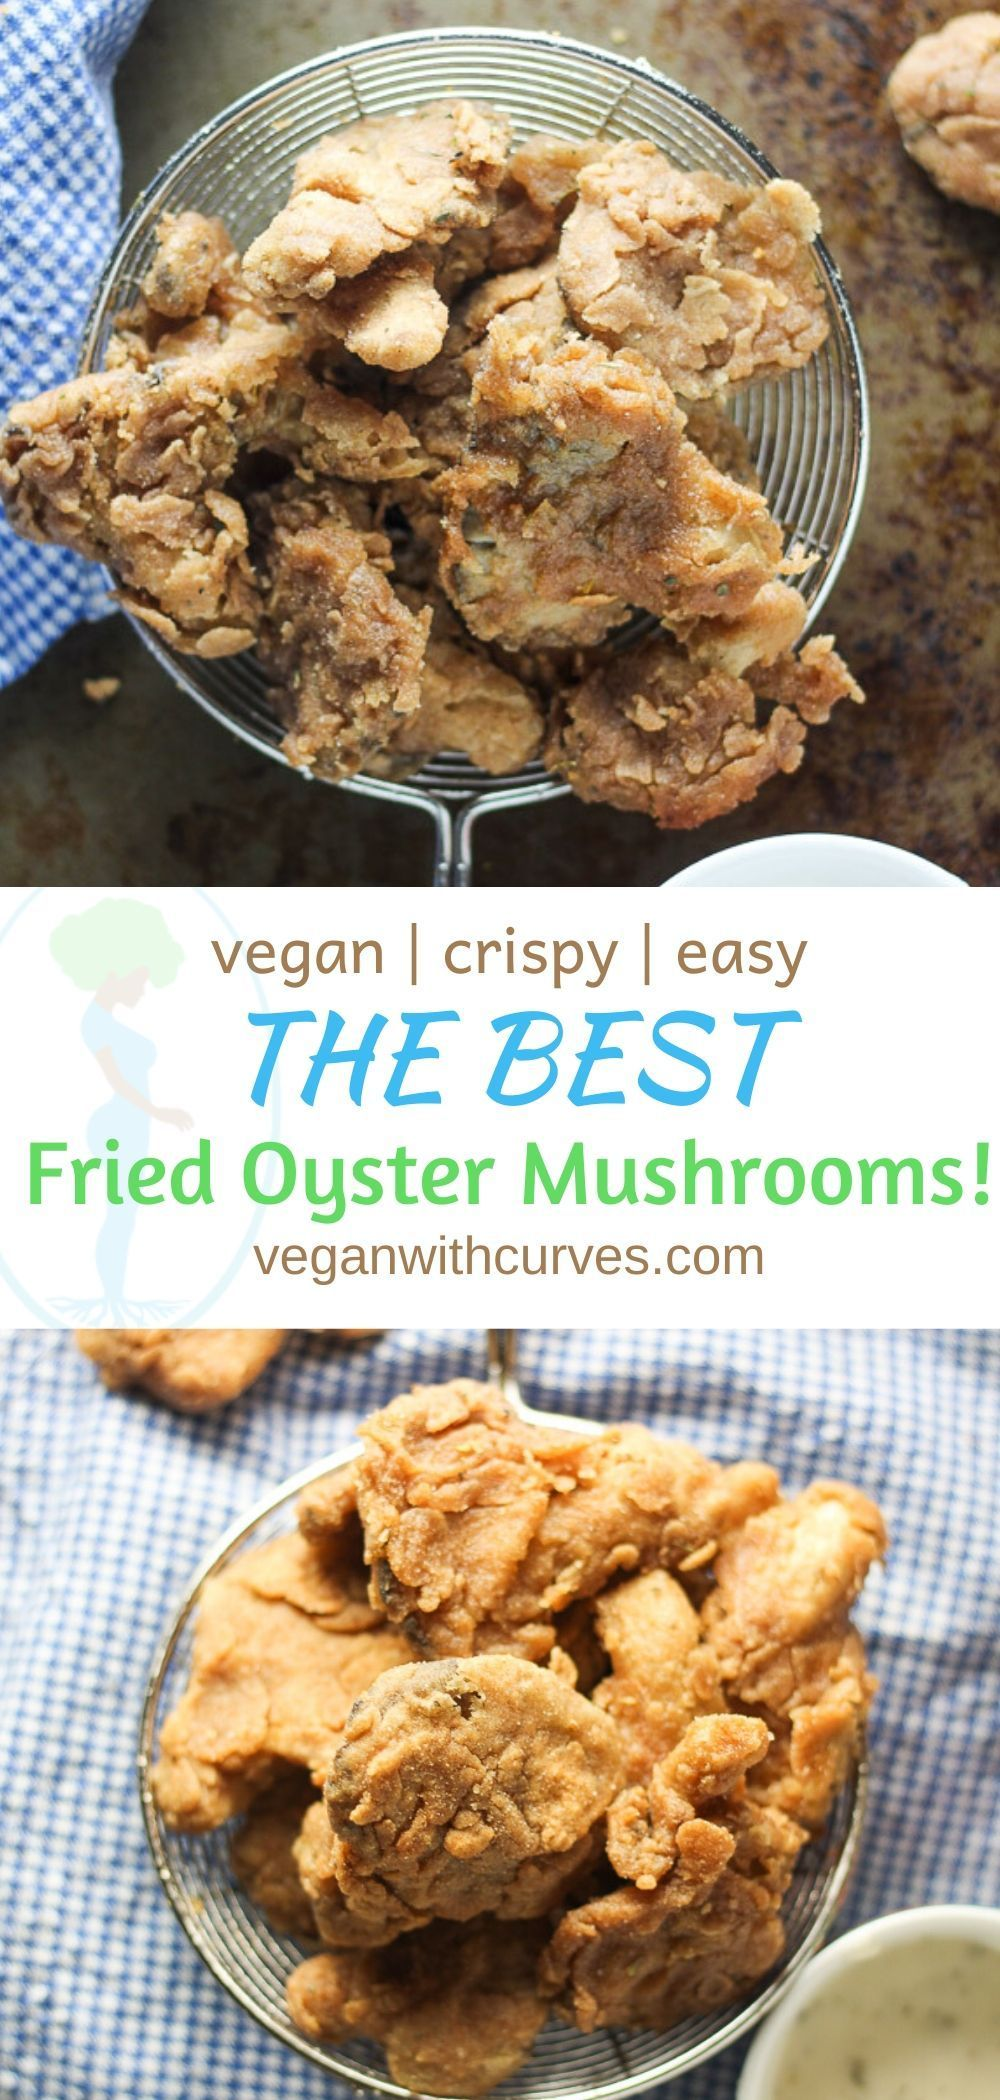 Addicting Fried Oyster Mushrooms Fried Chicken Substitute Recipe In 2020 Vegan Appetizers Recipes Mushroom Recipes Vegan Vegan Chicken Recipes